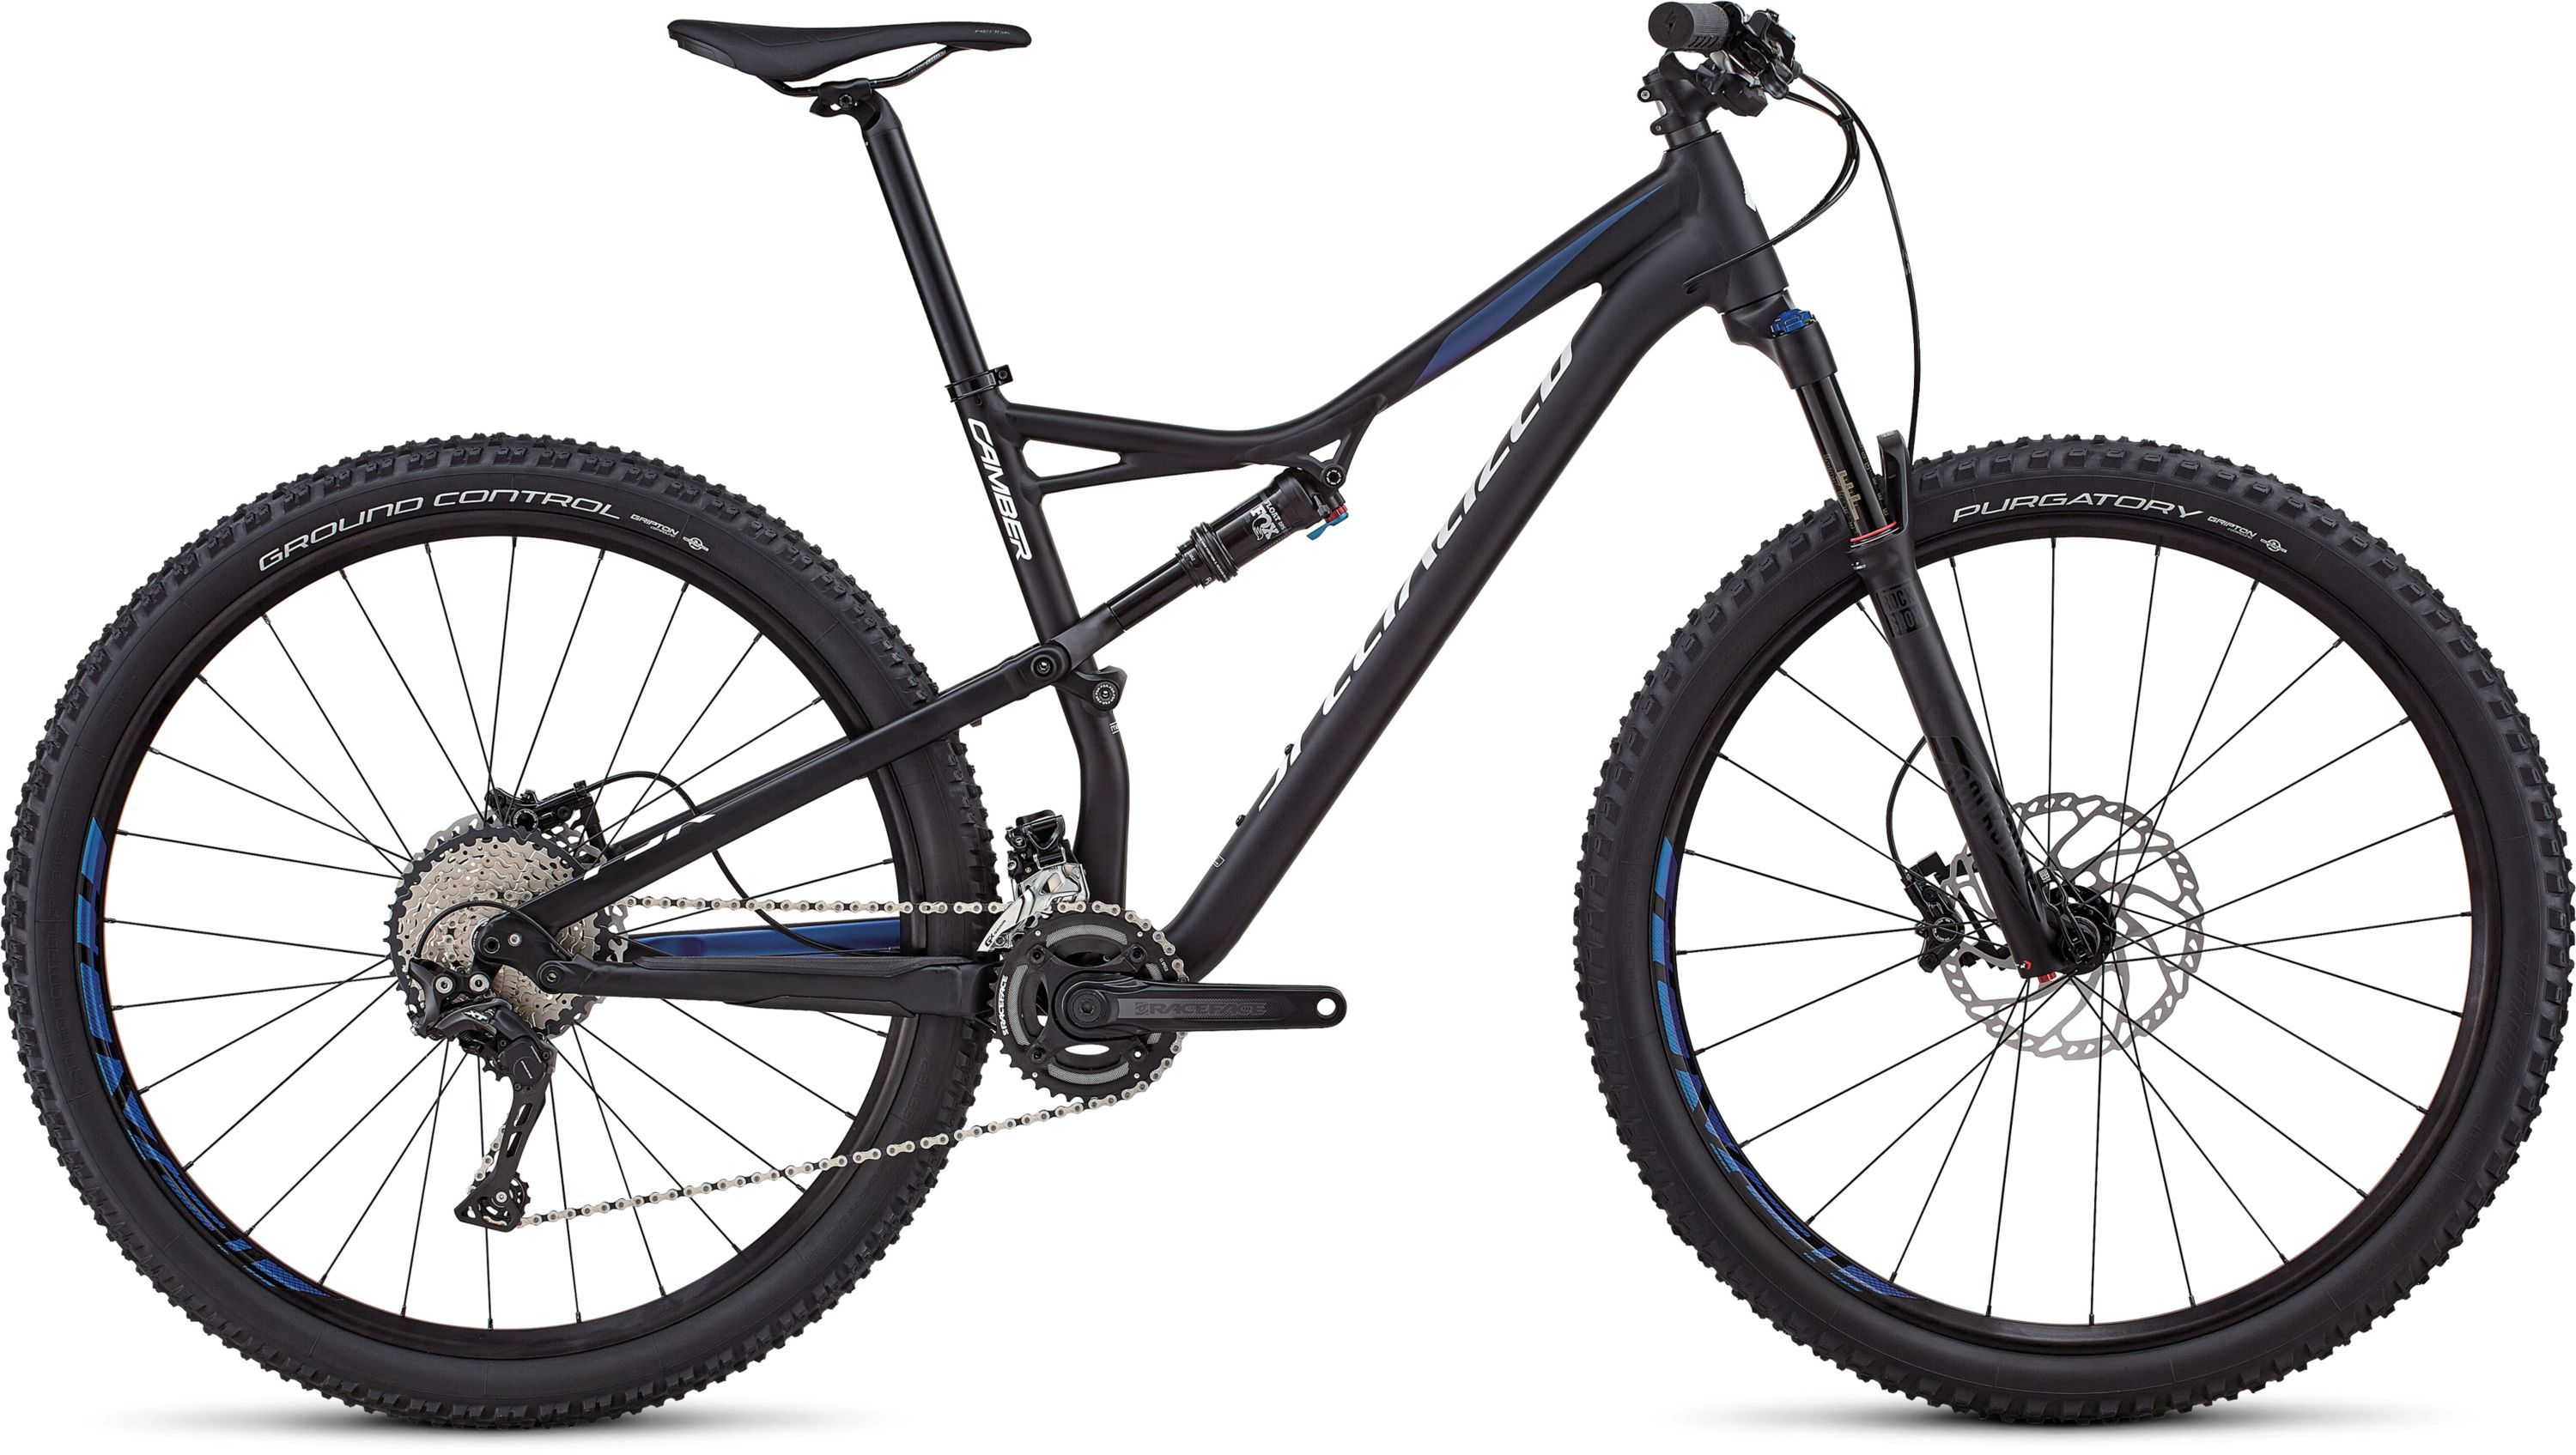 Specialized Camber Comp 29 Trail Mountain Bike 1 799 99